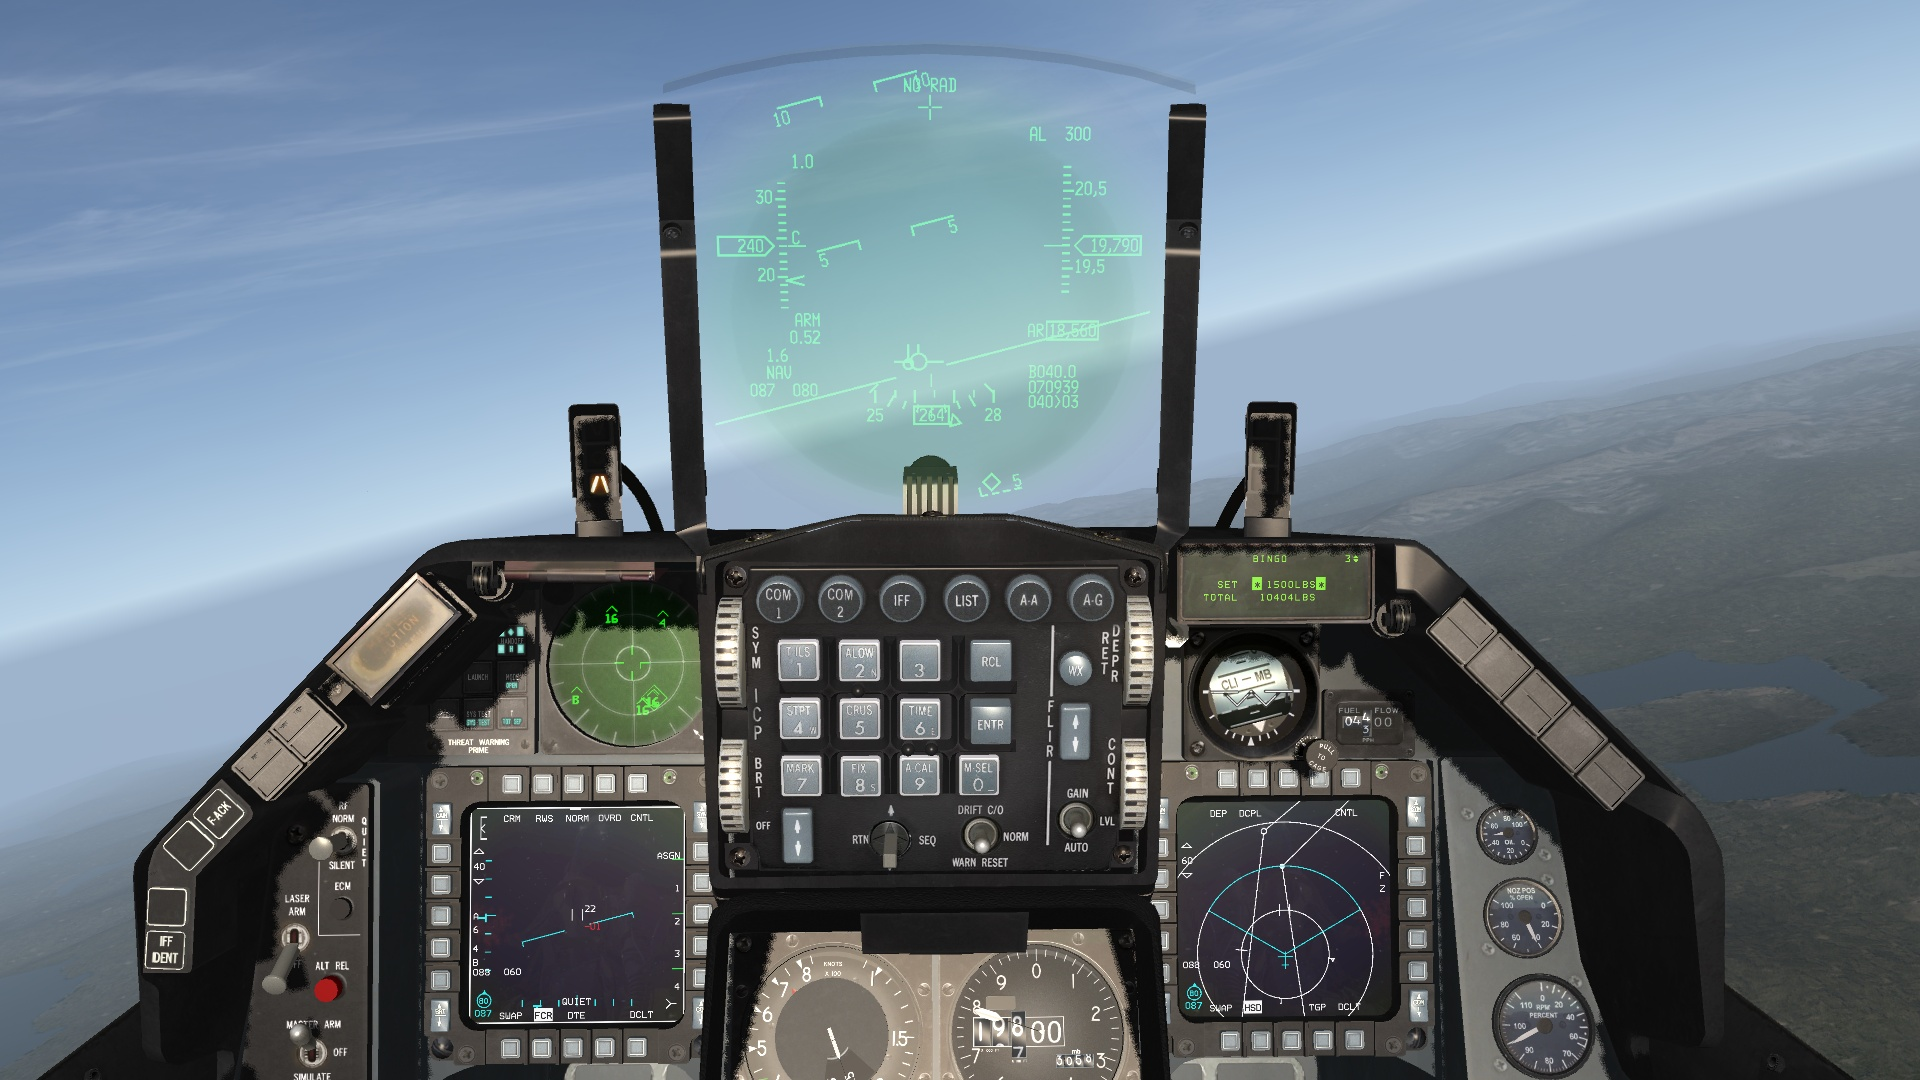 Falcon bms how to choose plane